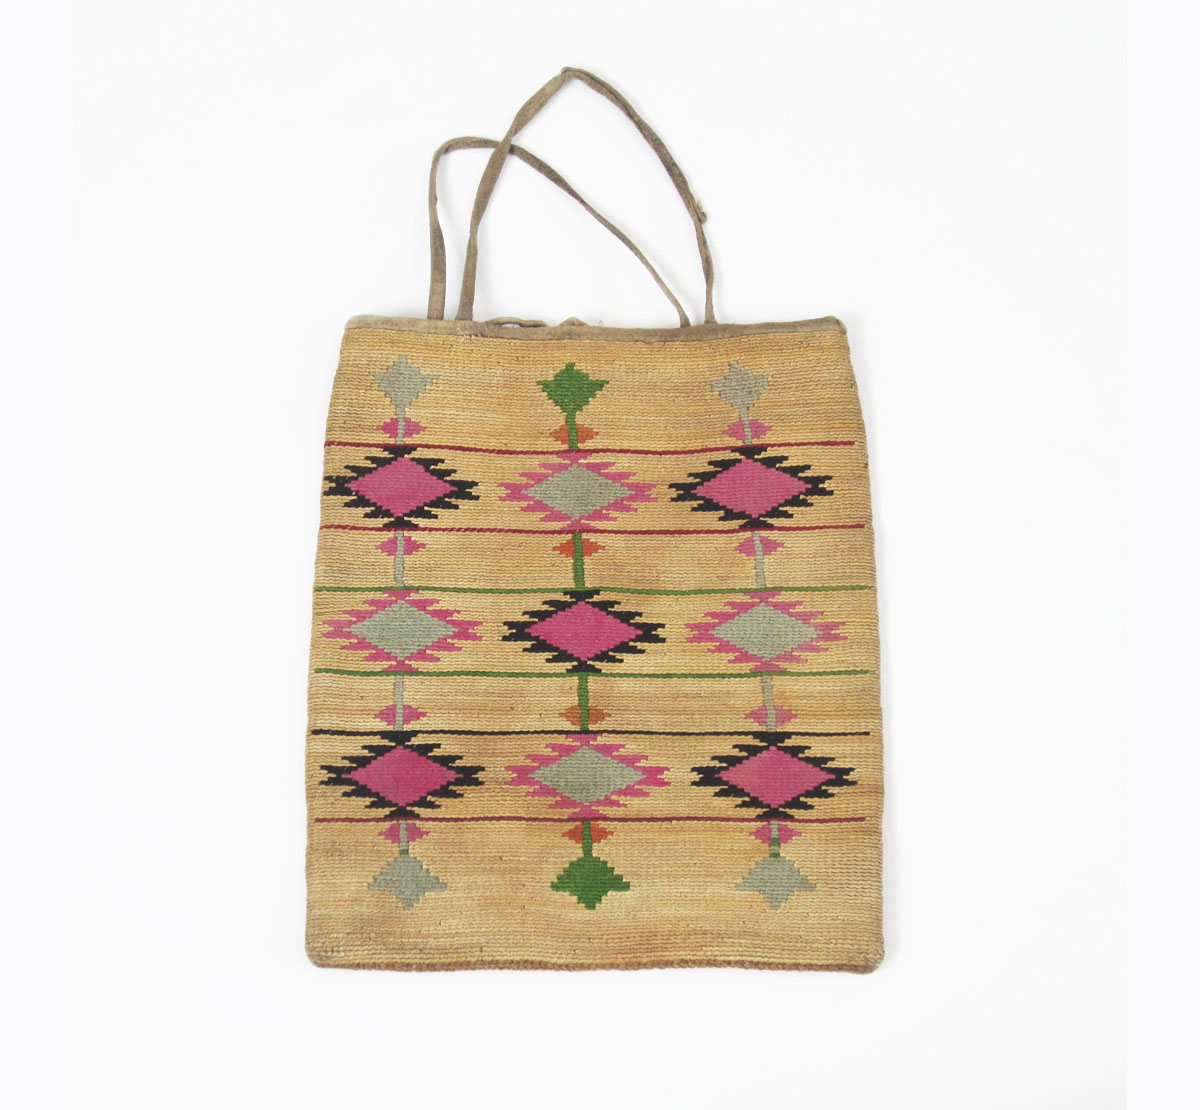 https://www.marcyburns.com/baskets-collection/nez-perces-cornhusk-bag-2